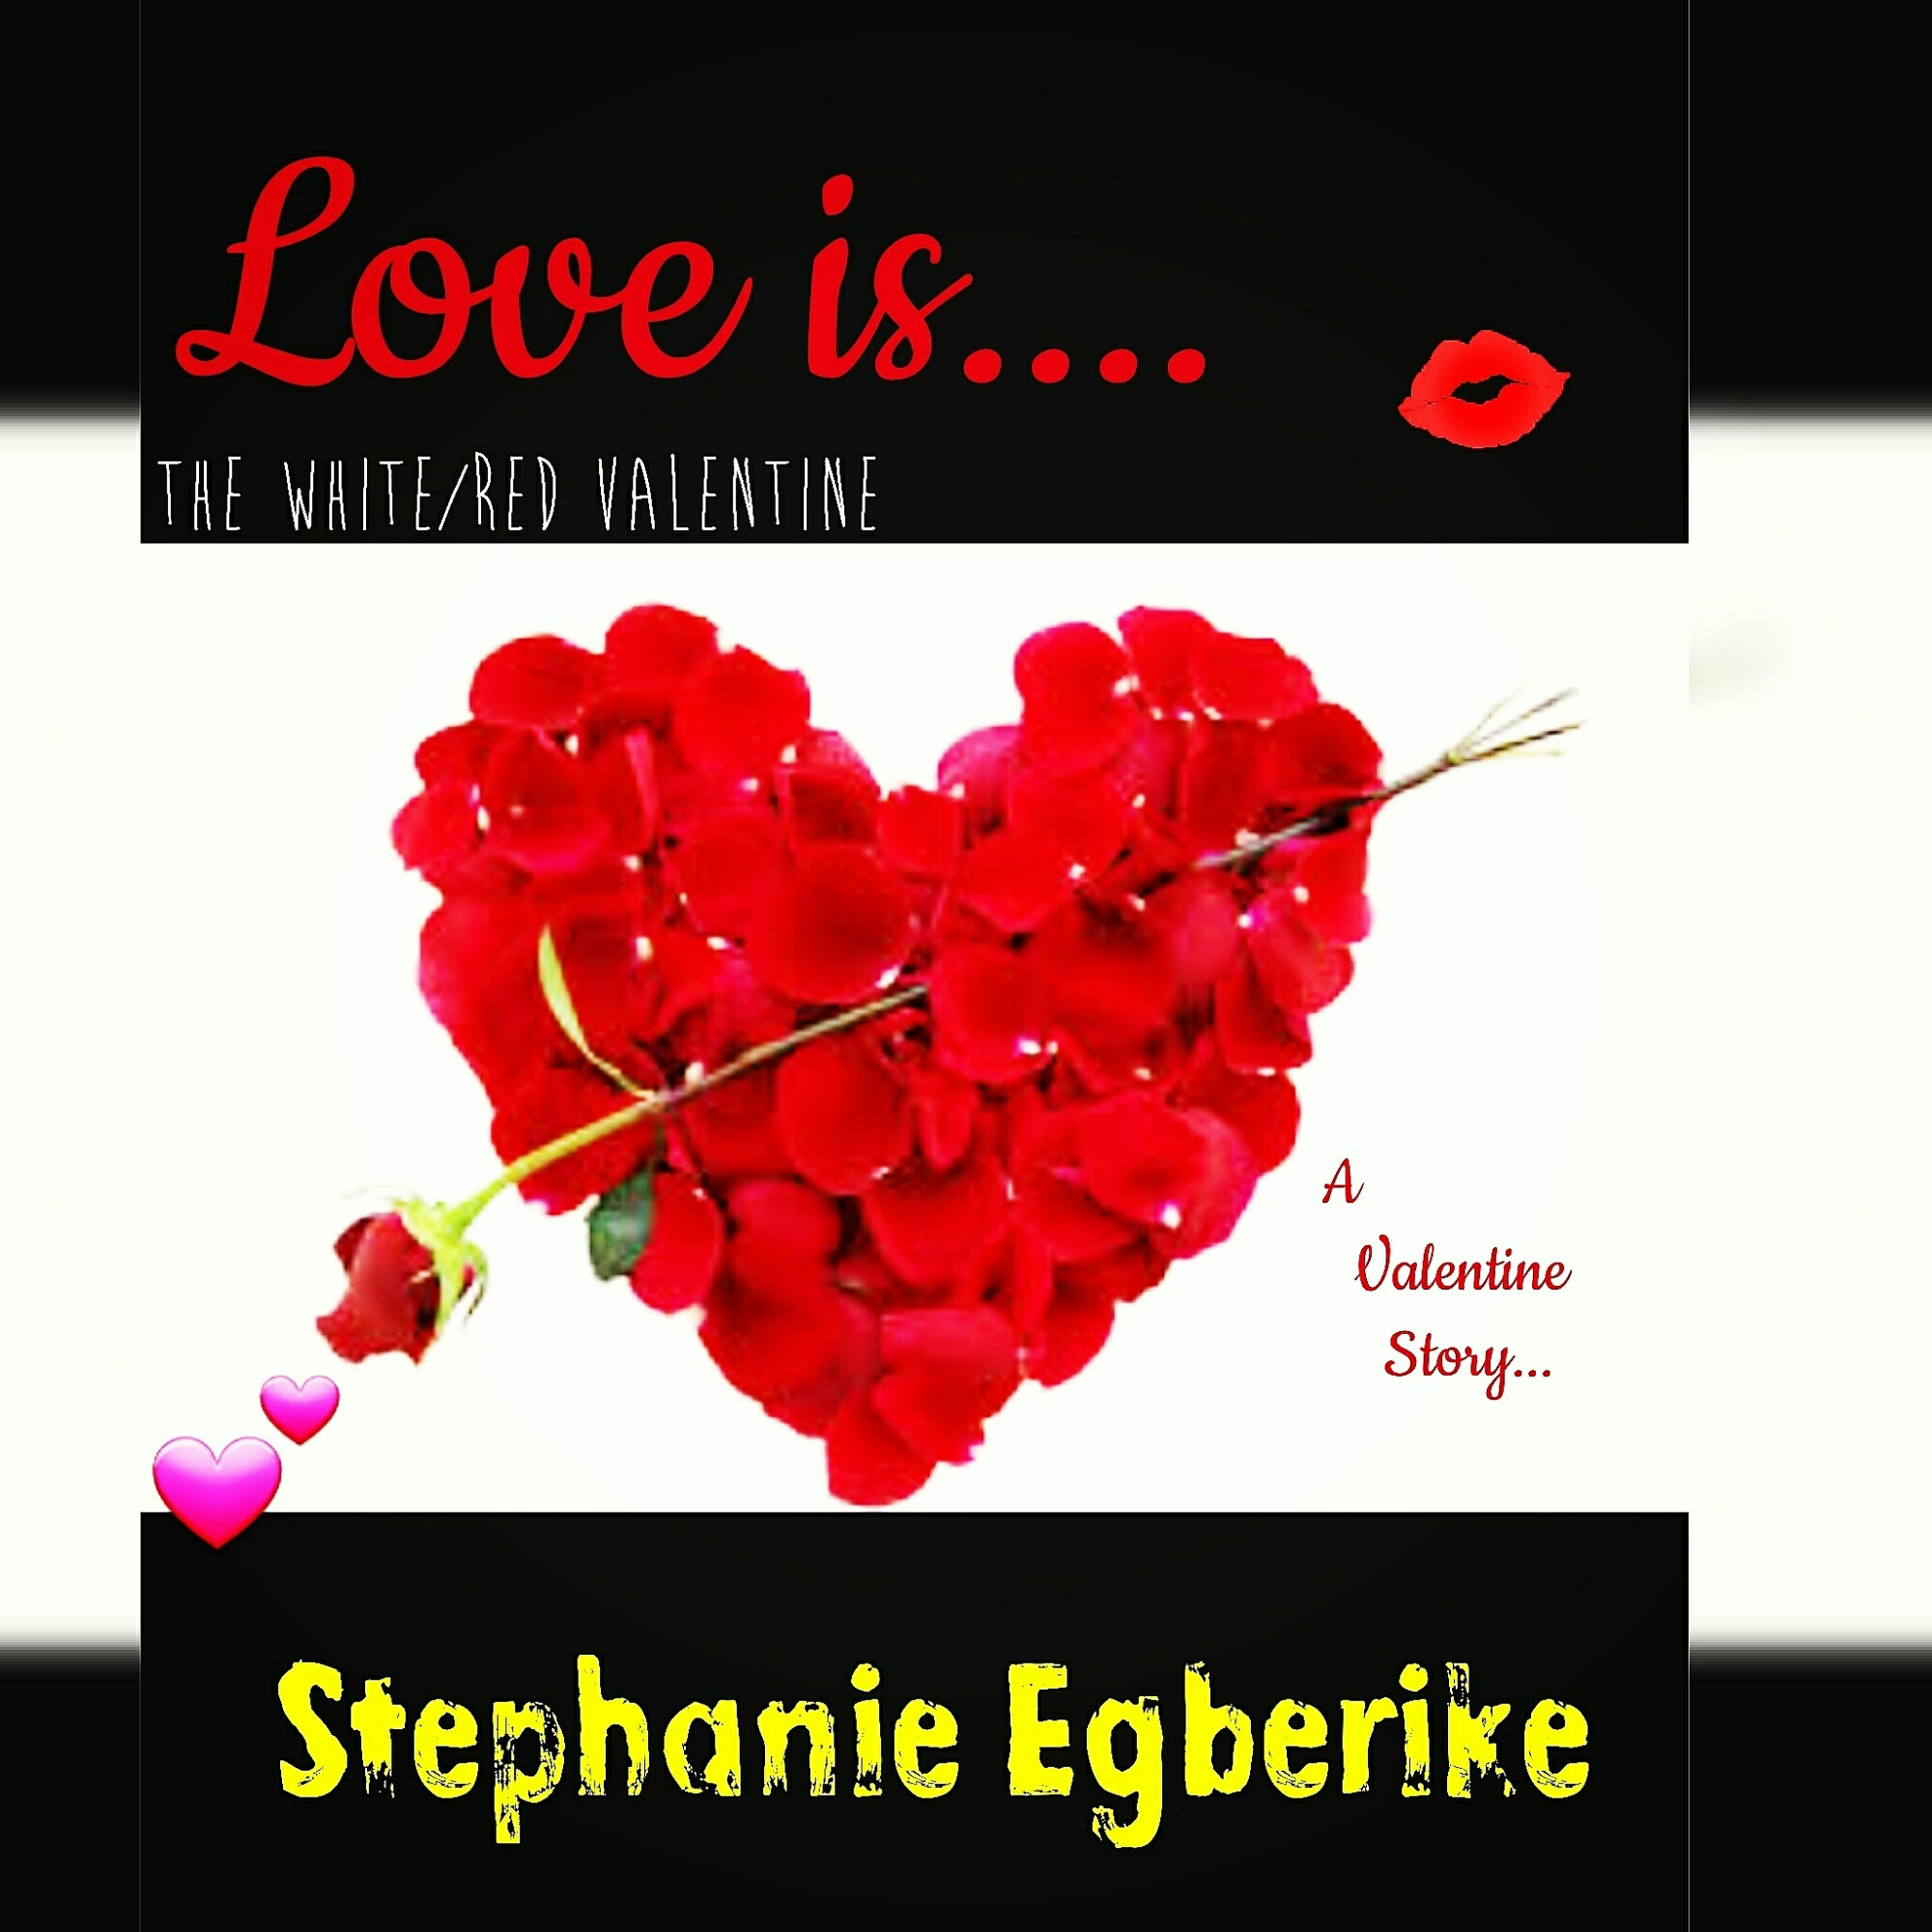 Love is (chp2) (feb12th)